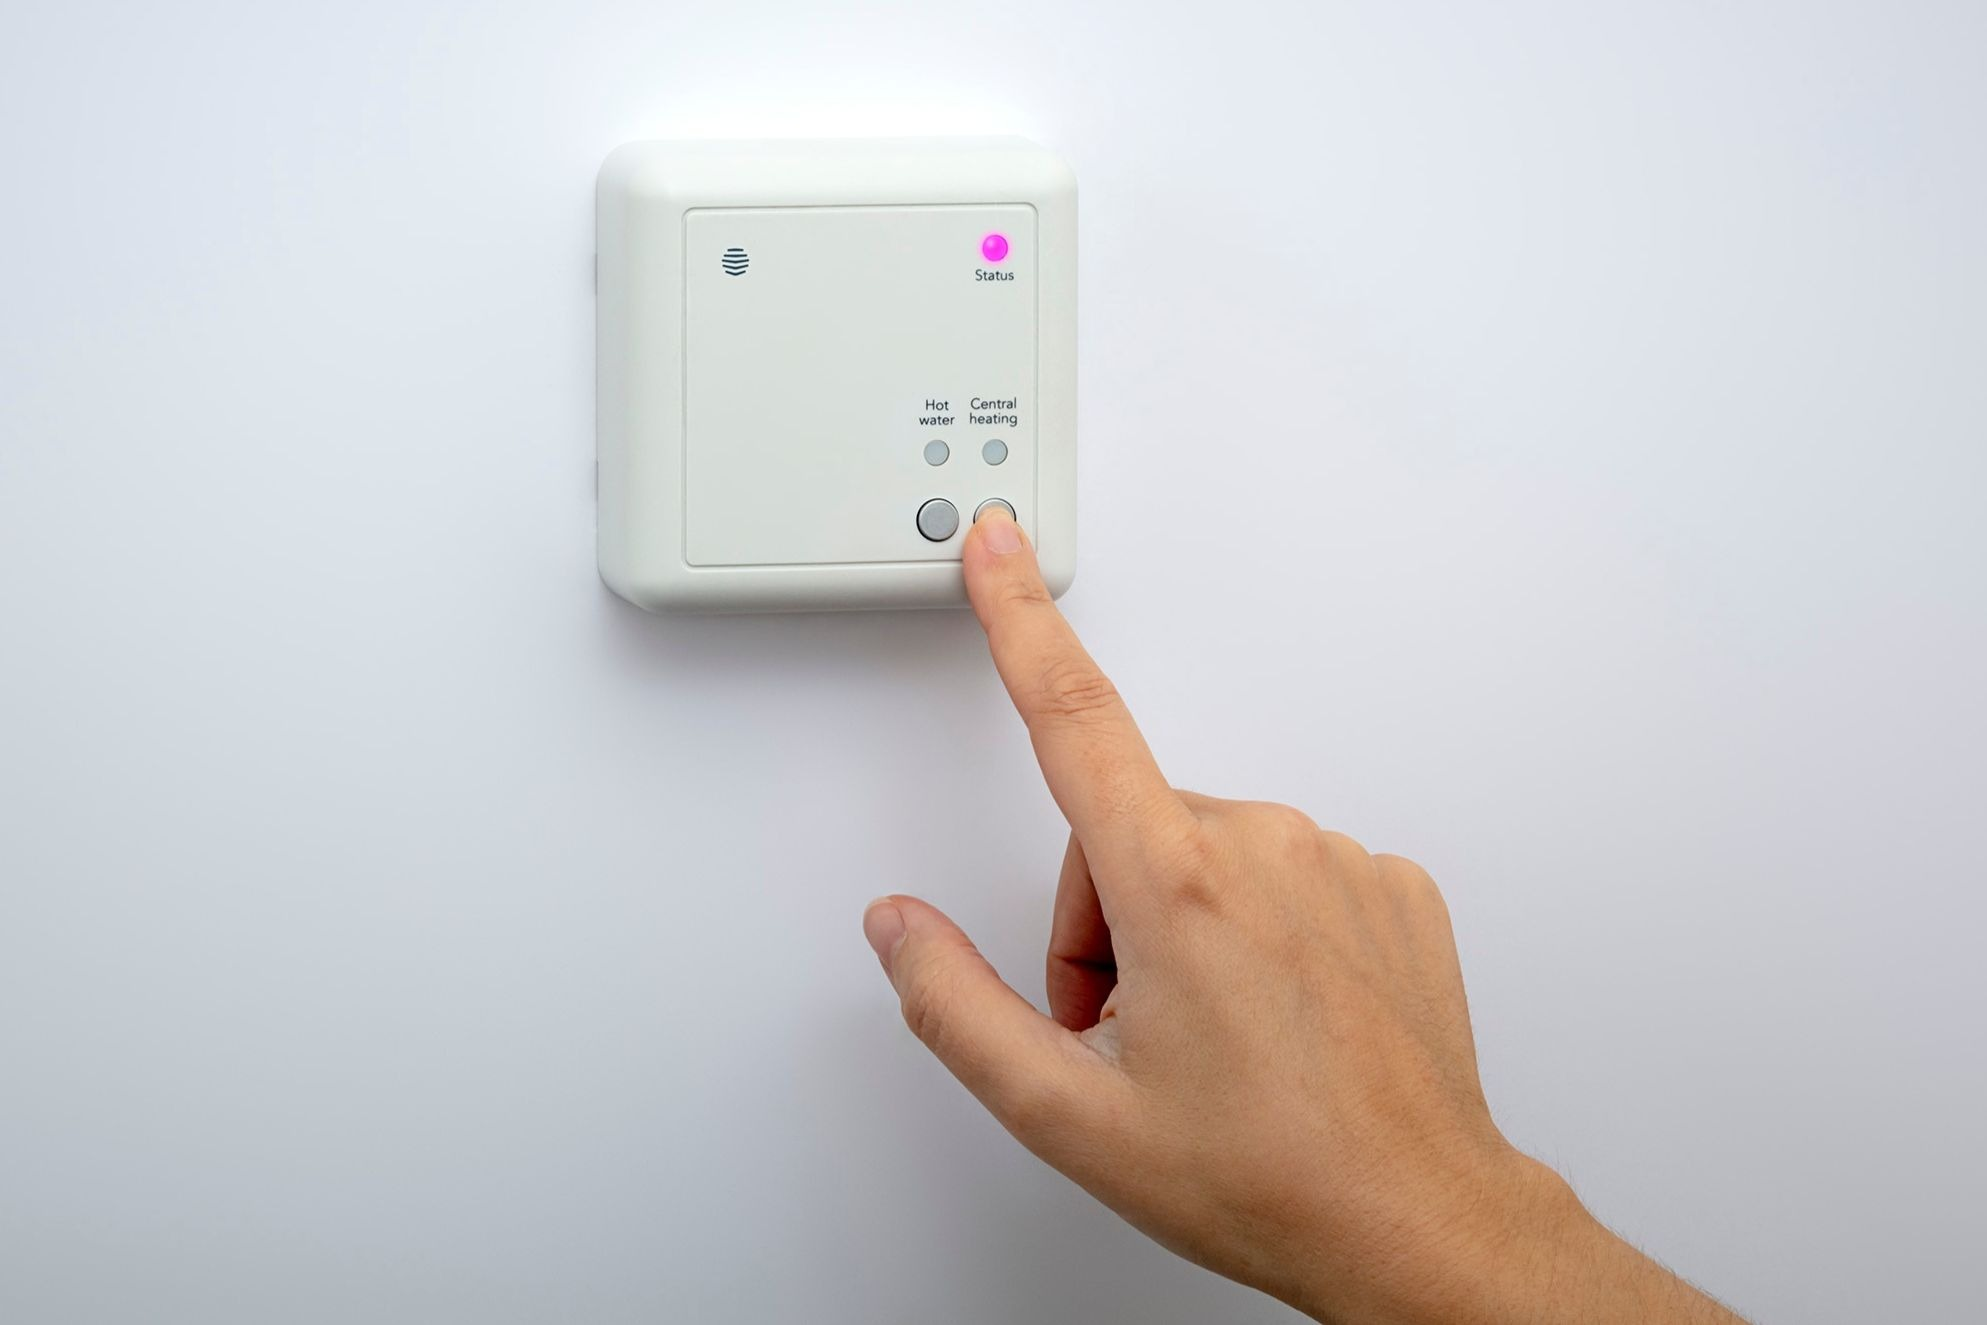 What to do if your Hive Thermostat is offline